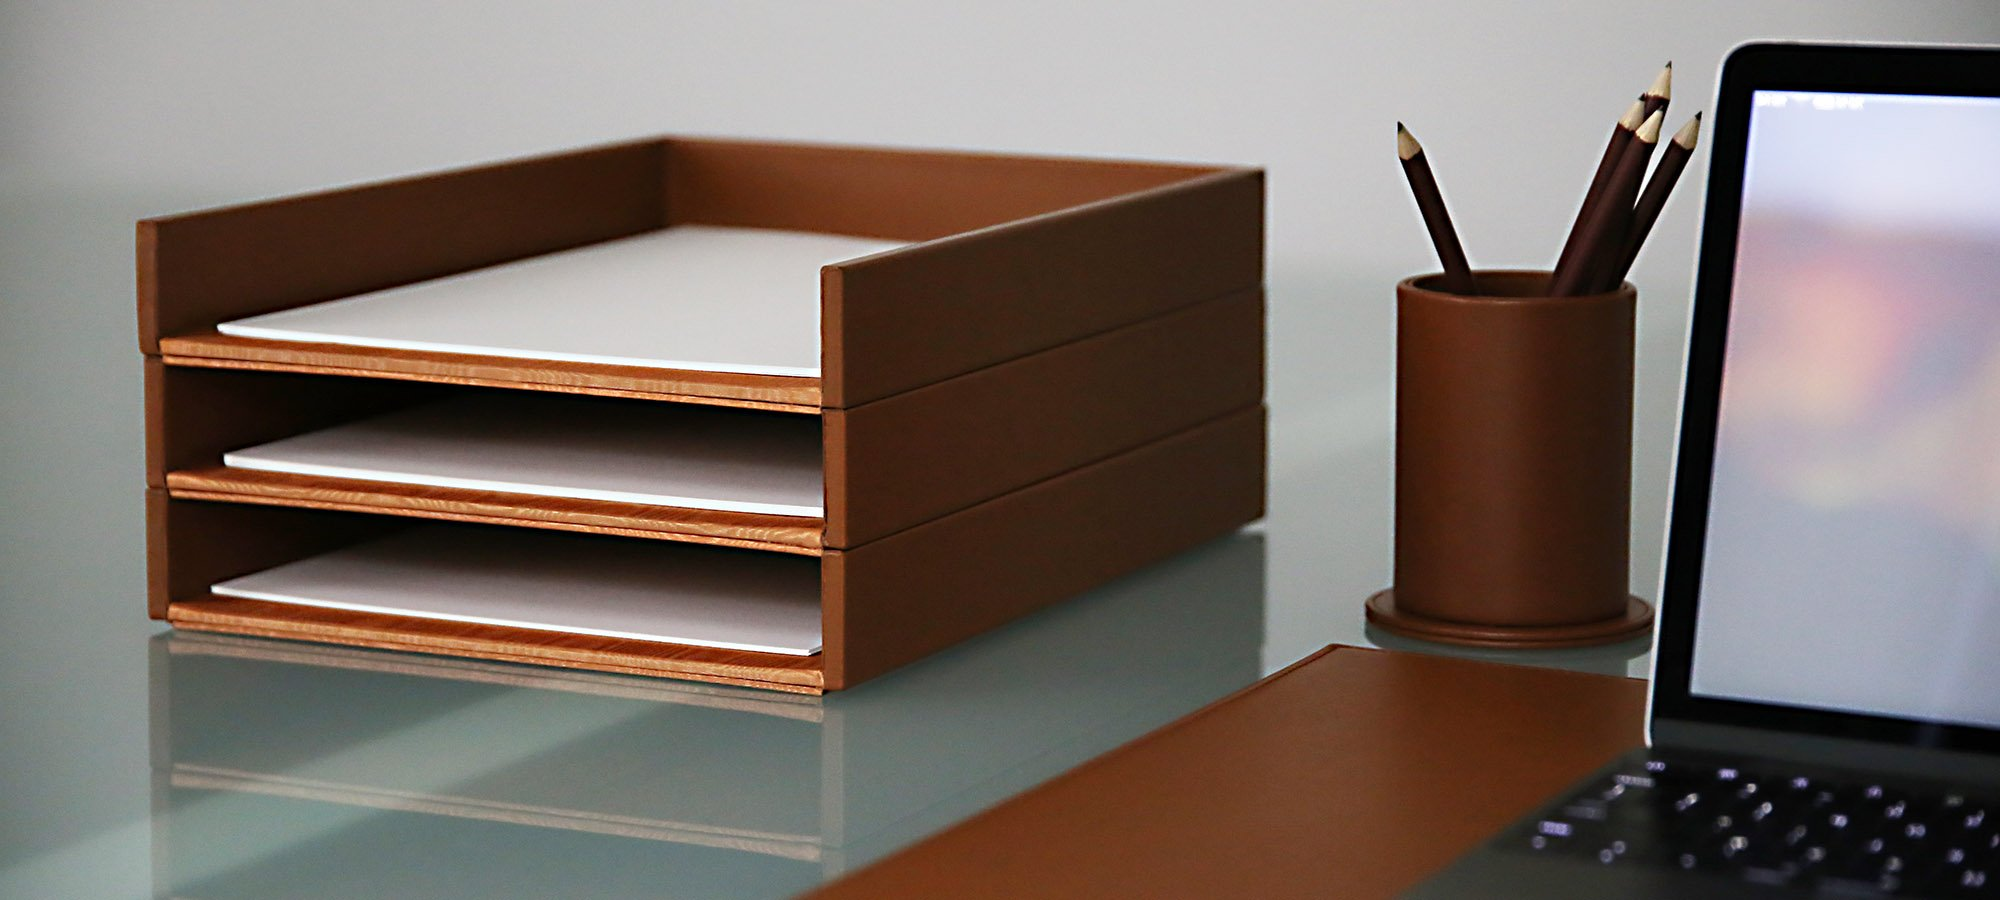 Office Letter Trays Designs Paper Tray 1 Stage Desk Storage Wood